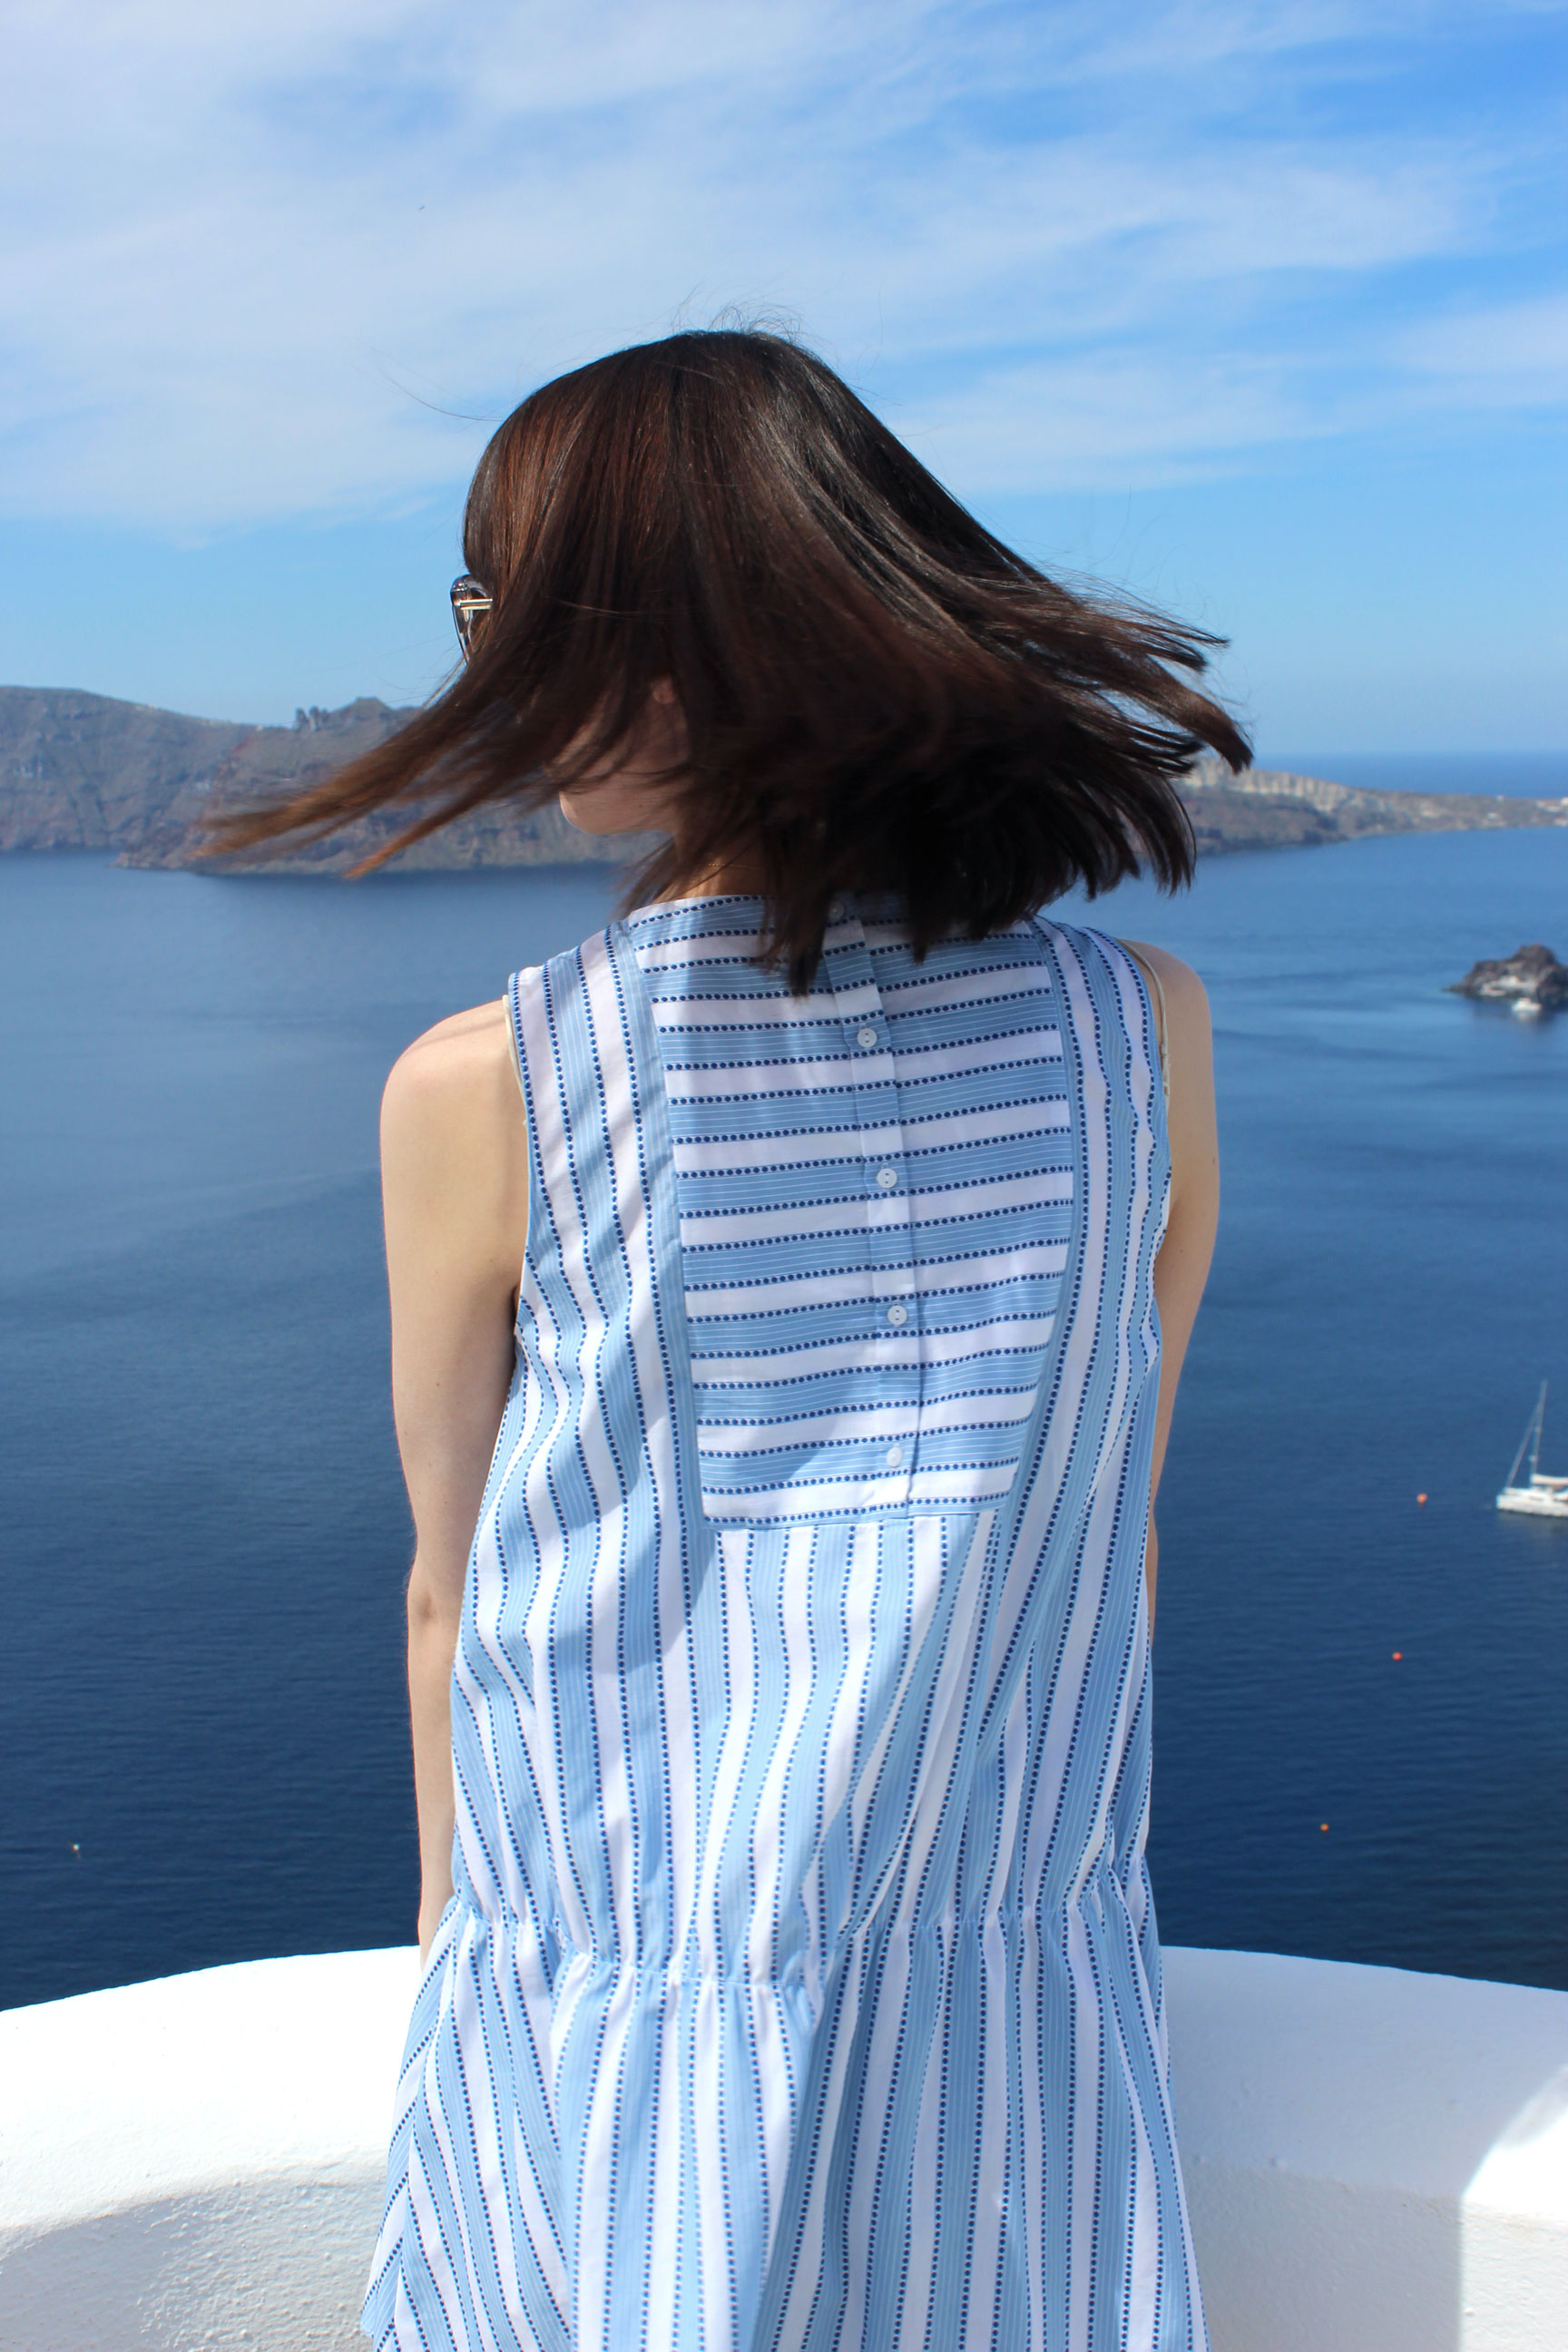 Recalling our stay at Ikies Hotel in Santorini, Greece